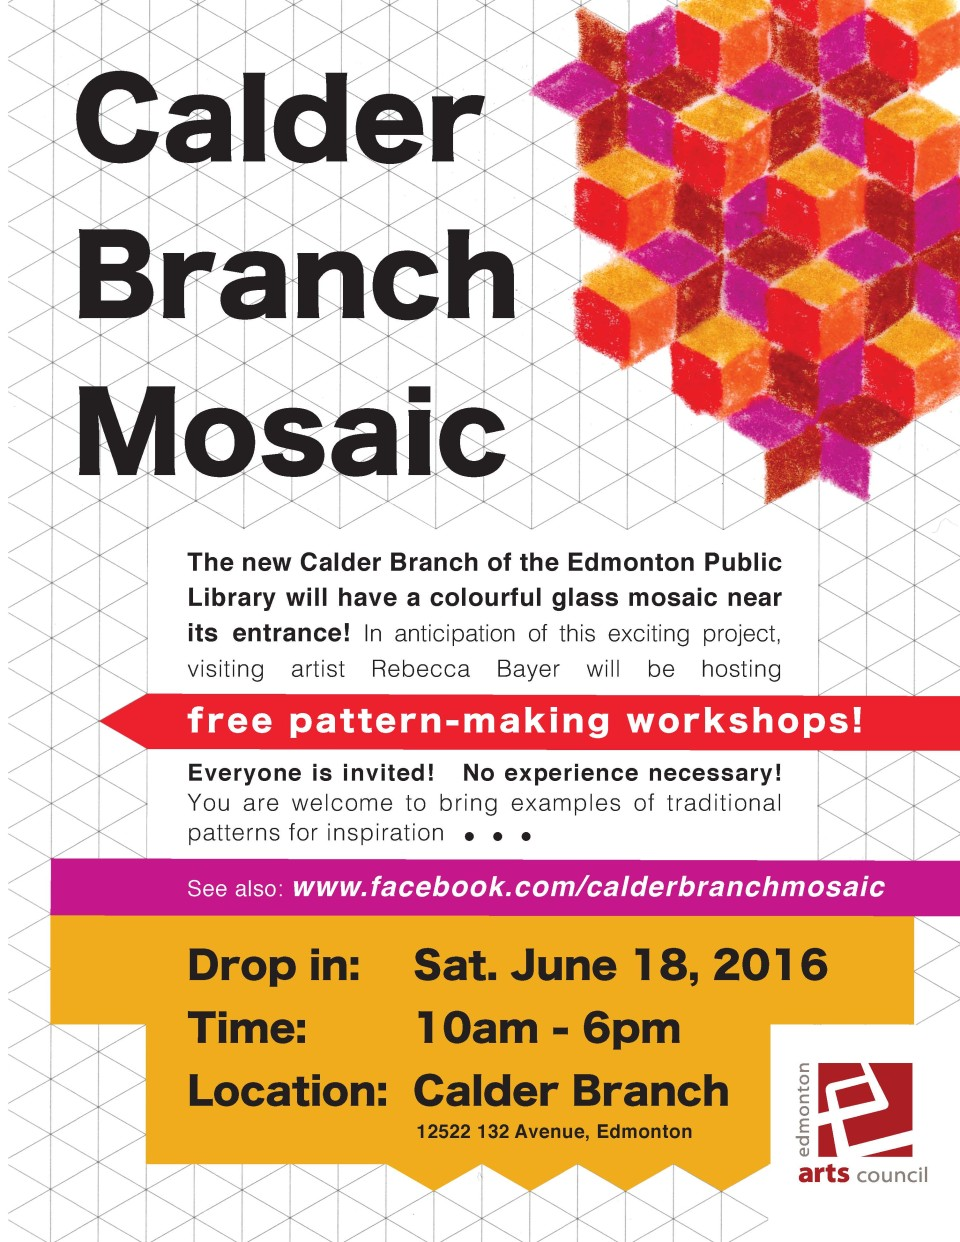 Calder Branch Mosaic Workshop Poster